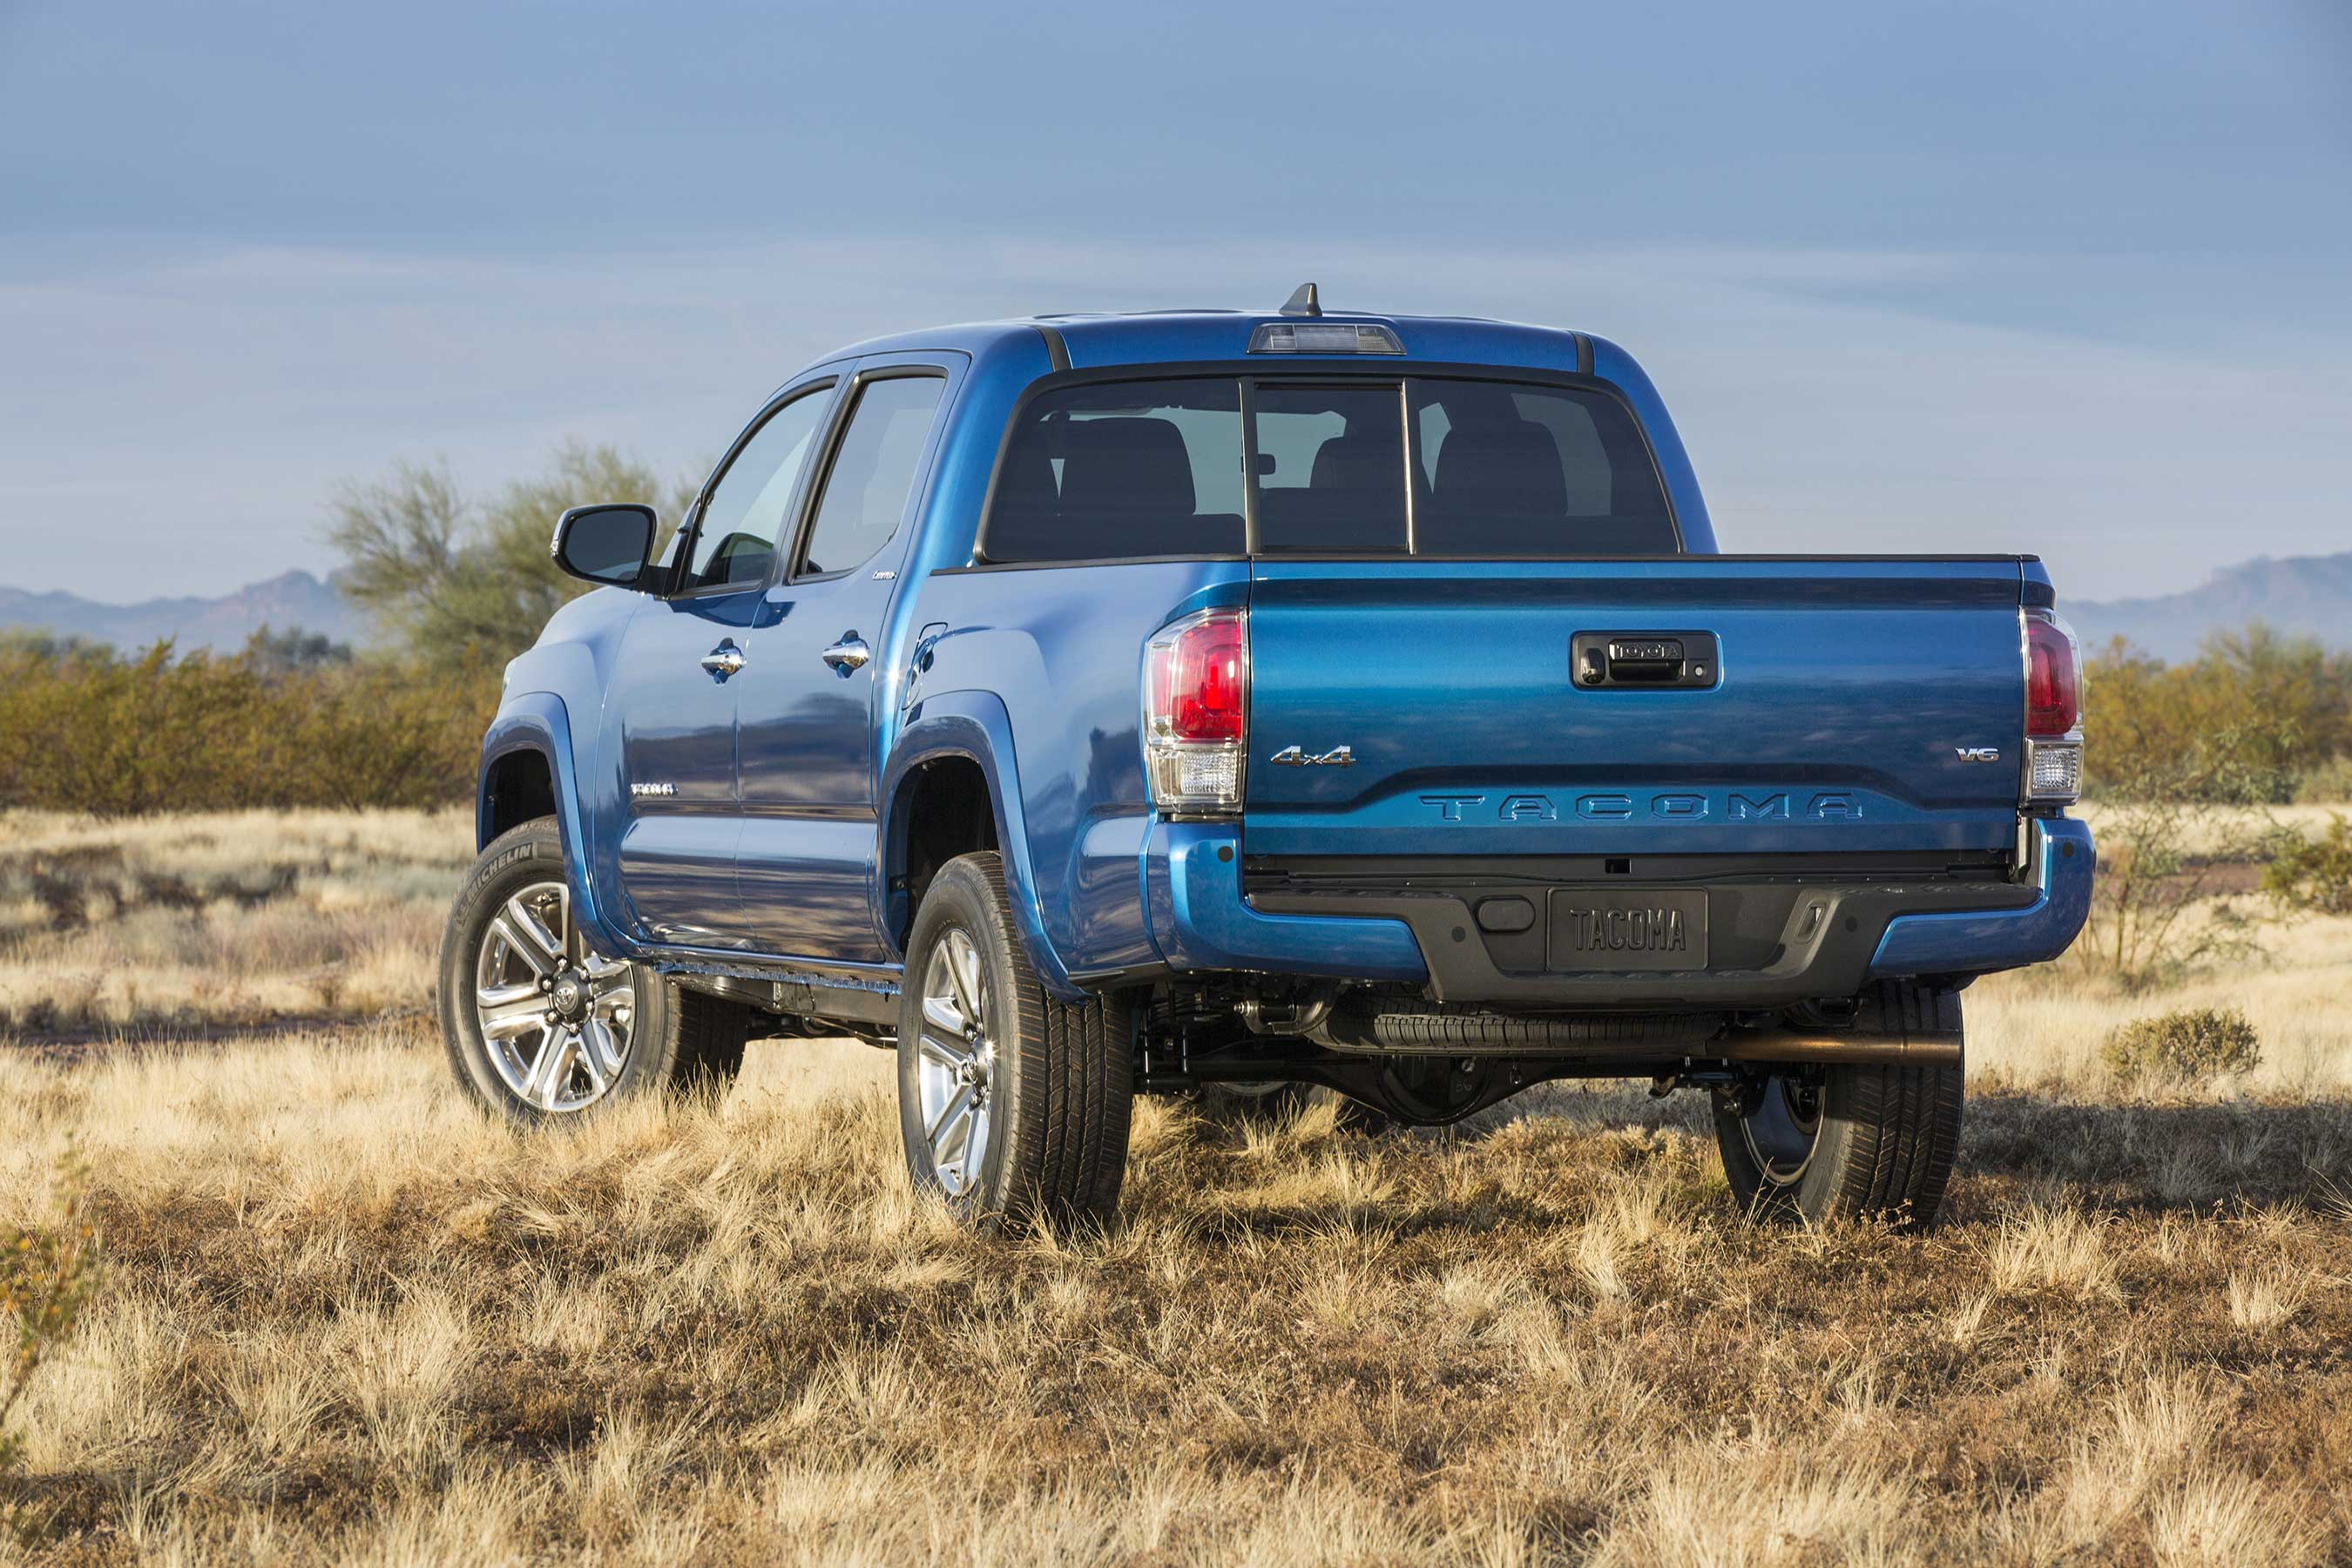 Concepts Trucks and Performance Steal the Show at the 2015 North